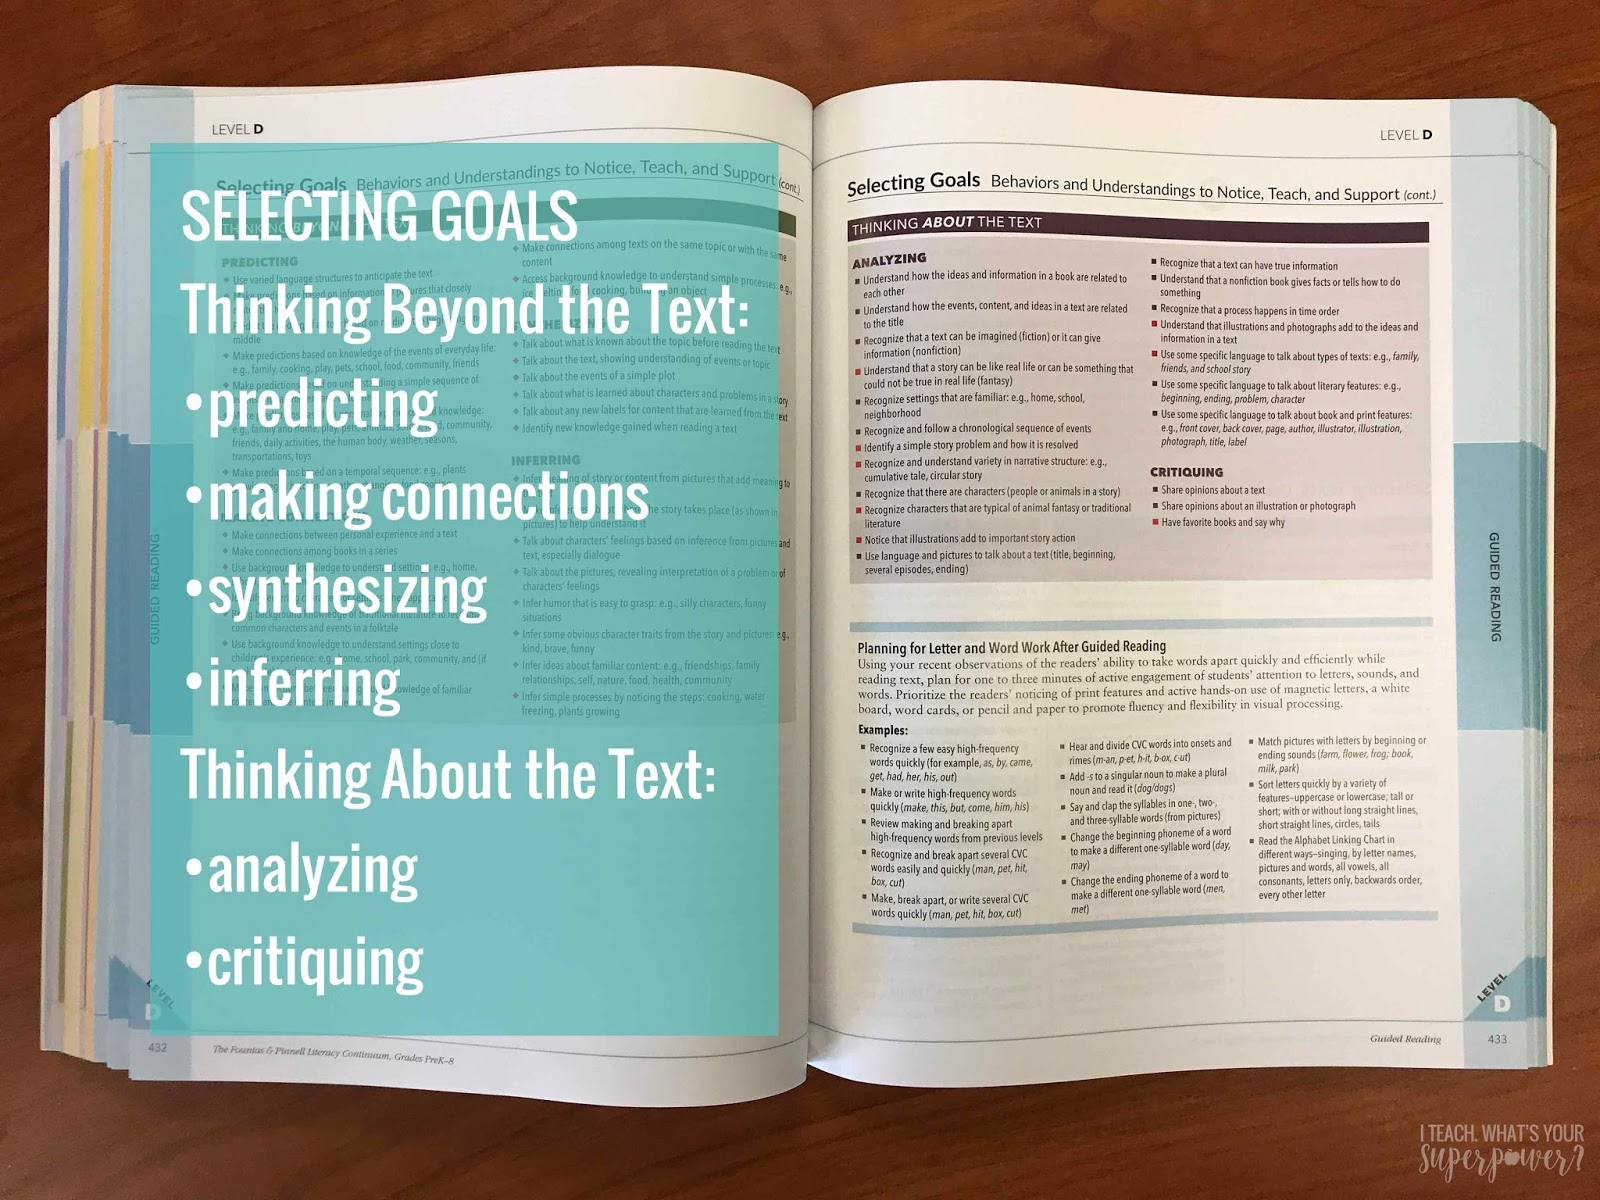 Awesome resource!! The description of each guided reading level is so thorough and detailed.